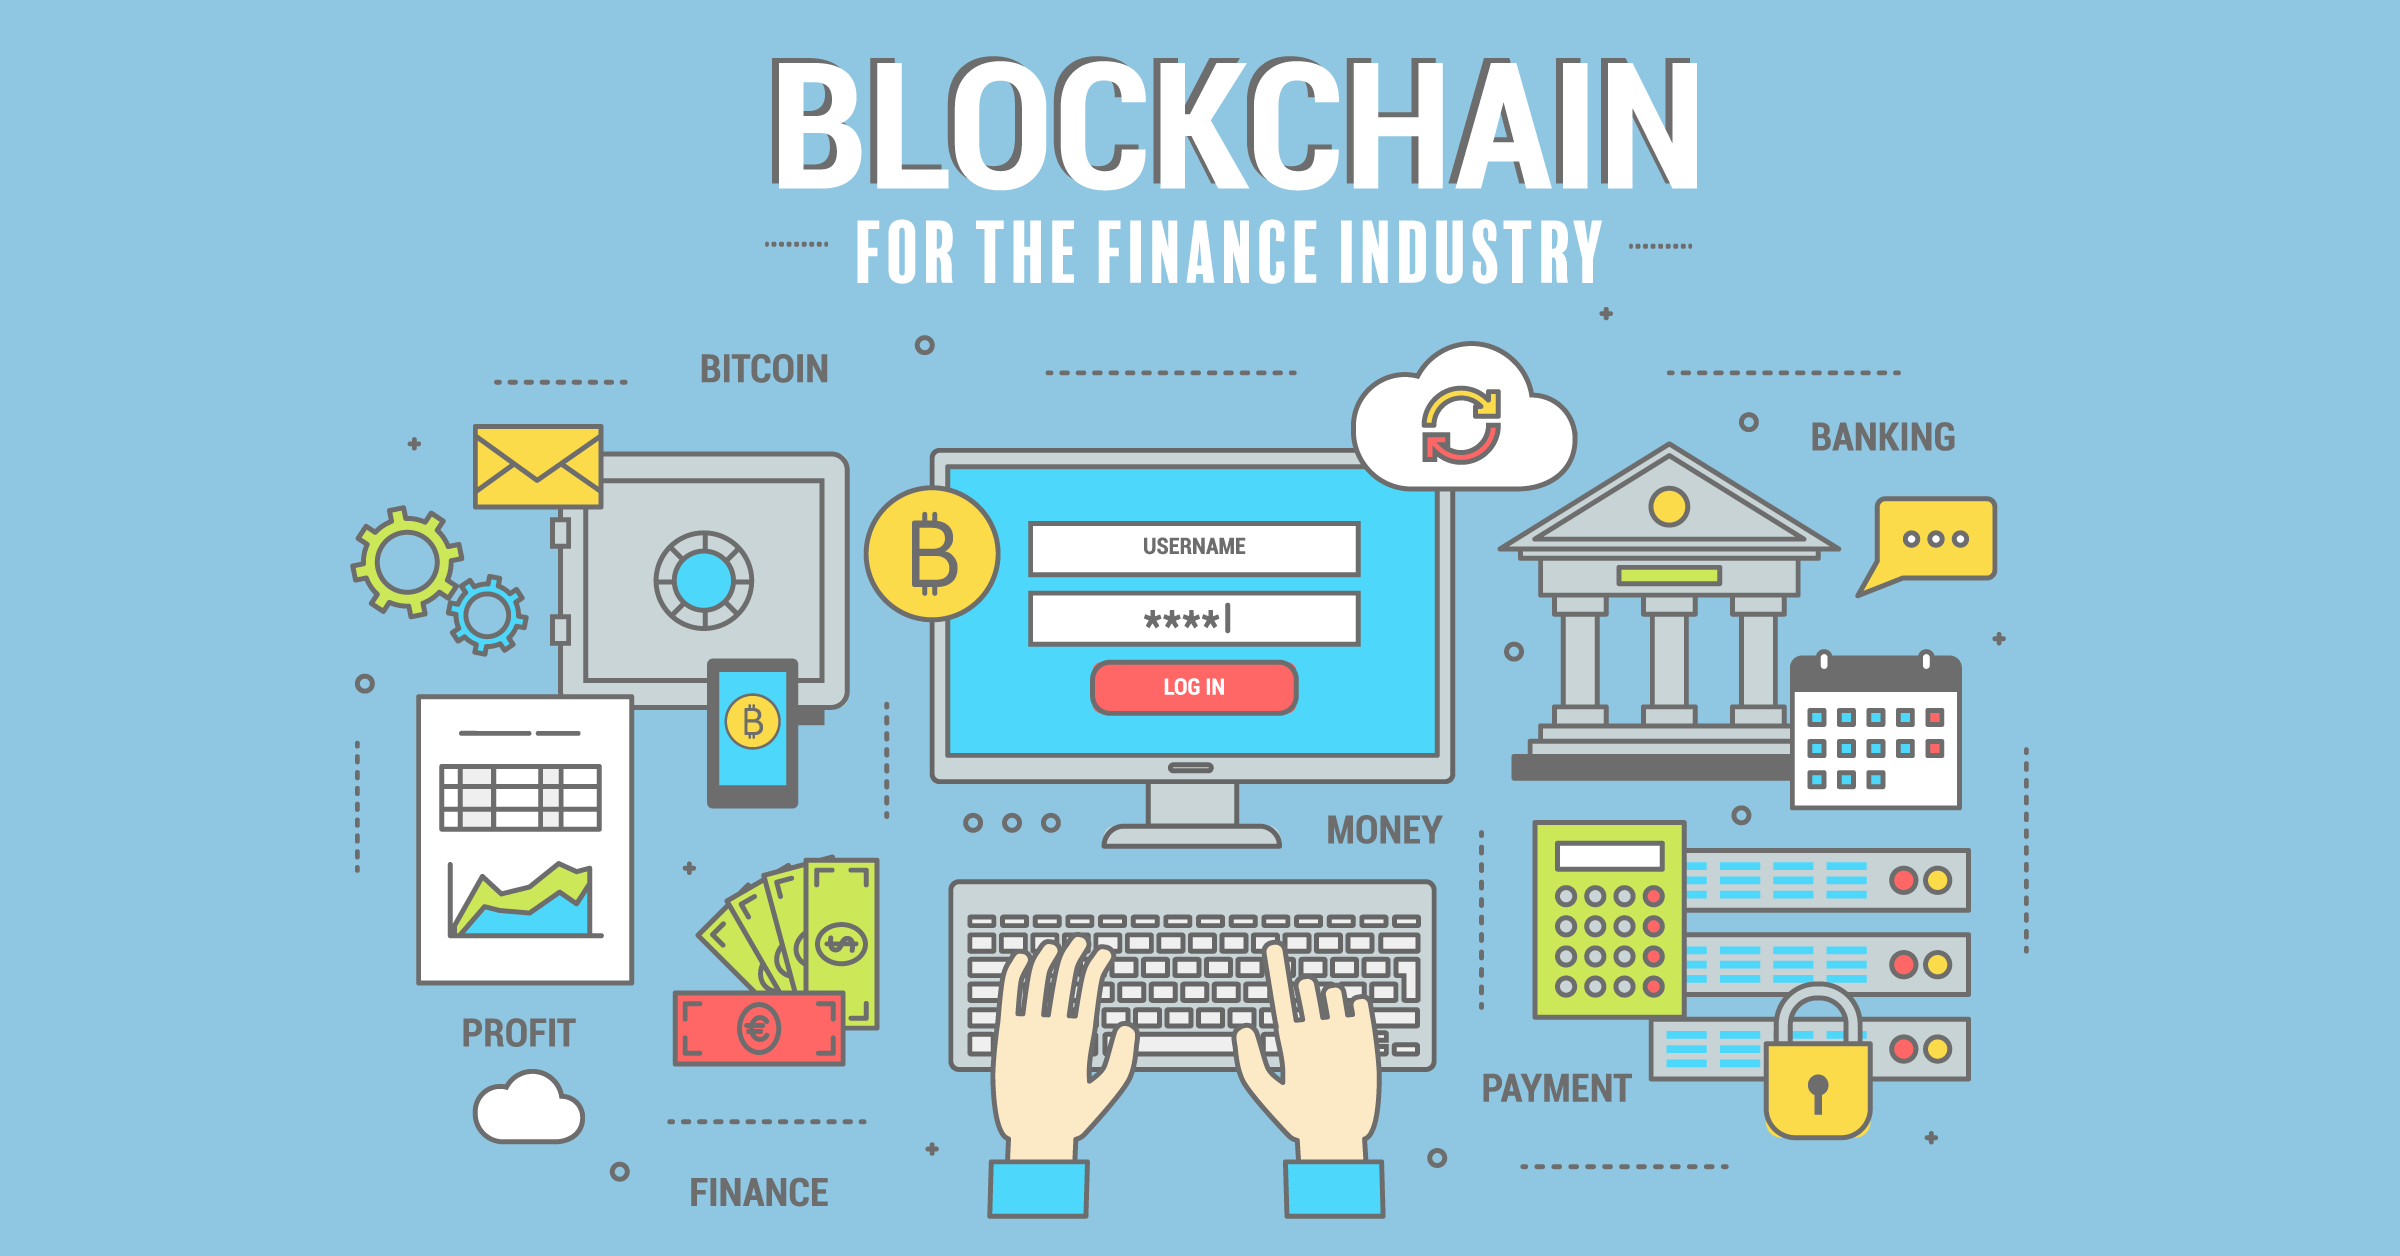 Blockchain for Finance Industry